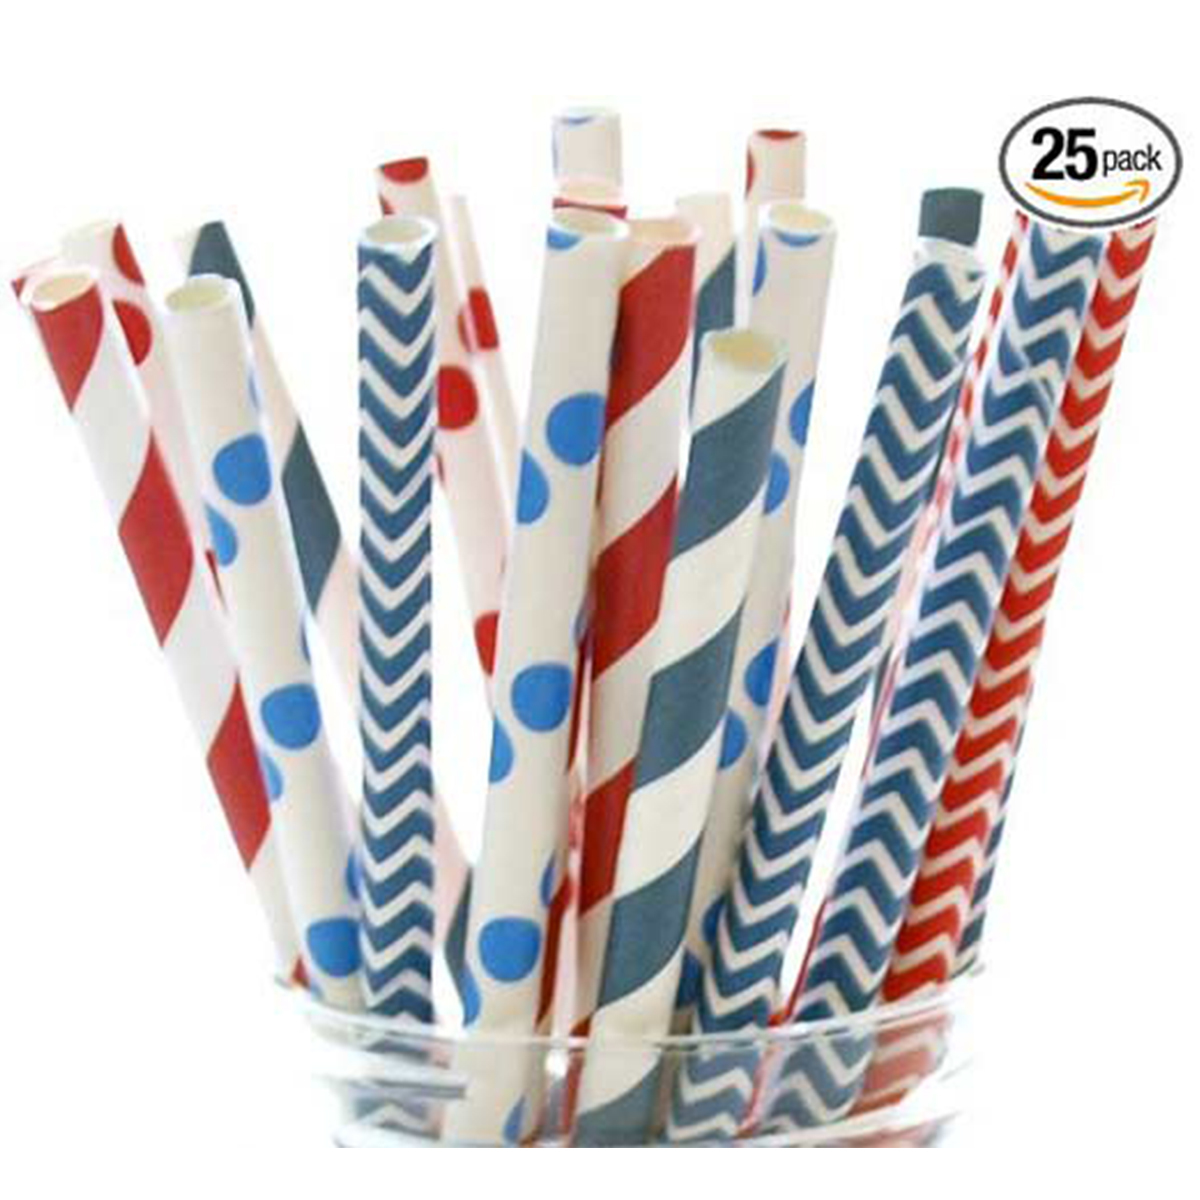 Festive straws with white and blue dots, blue and white zig-zag patterns, and red striped patterns photo